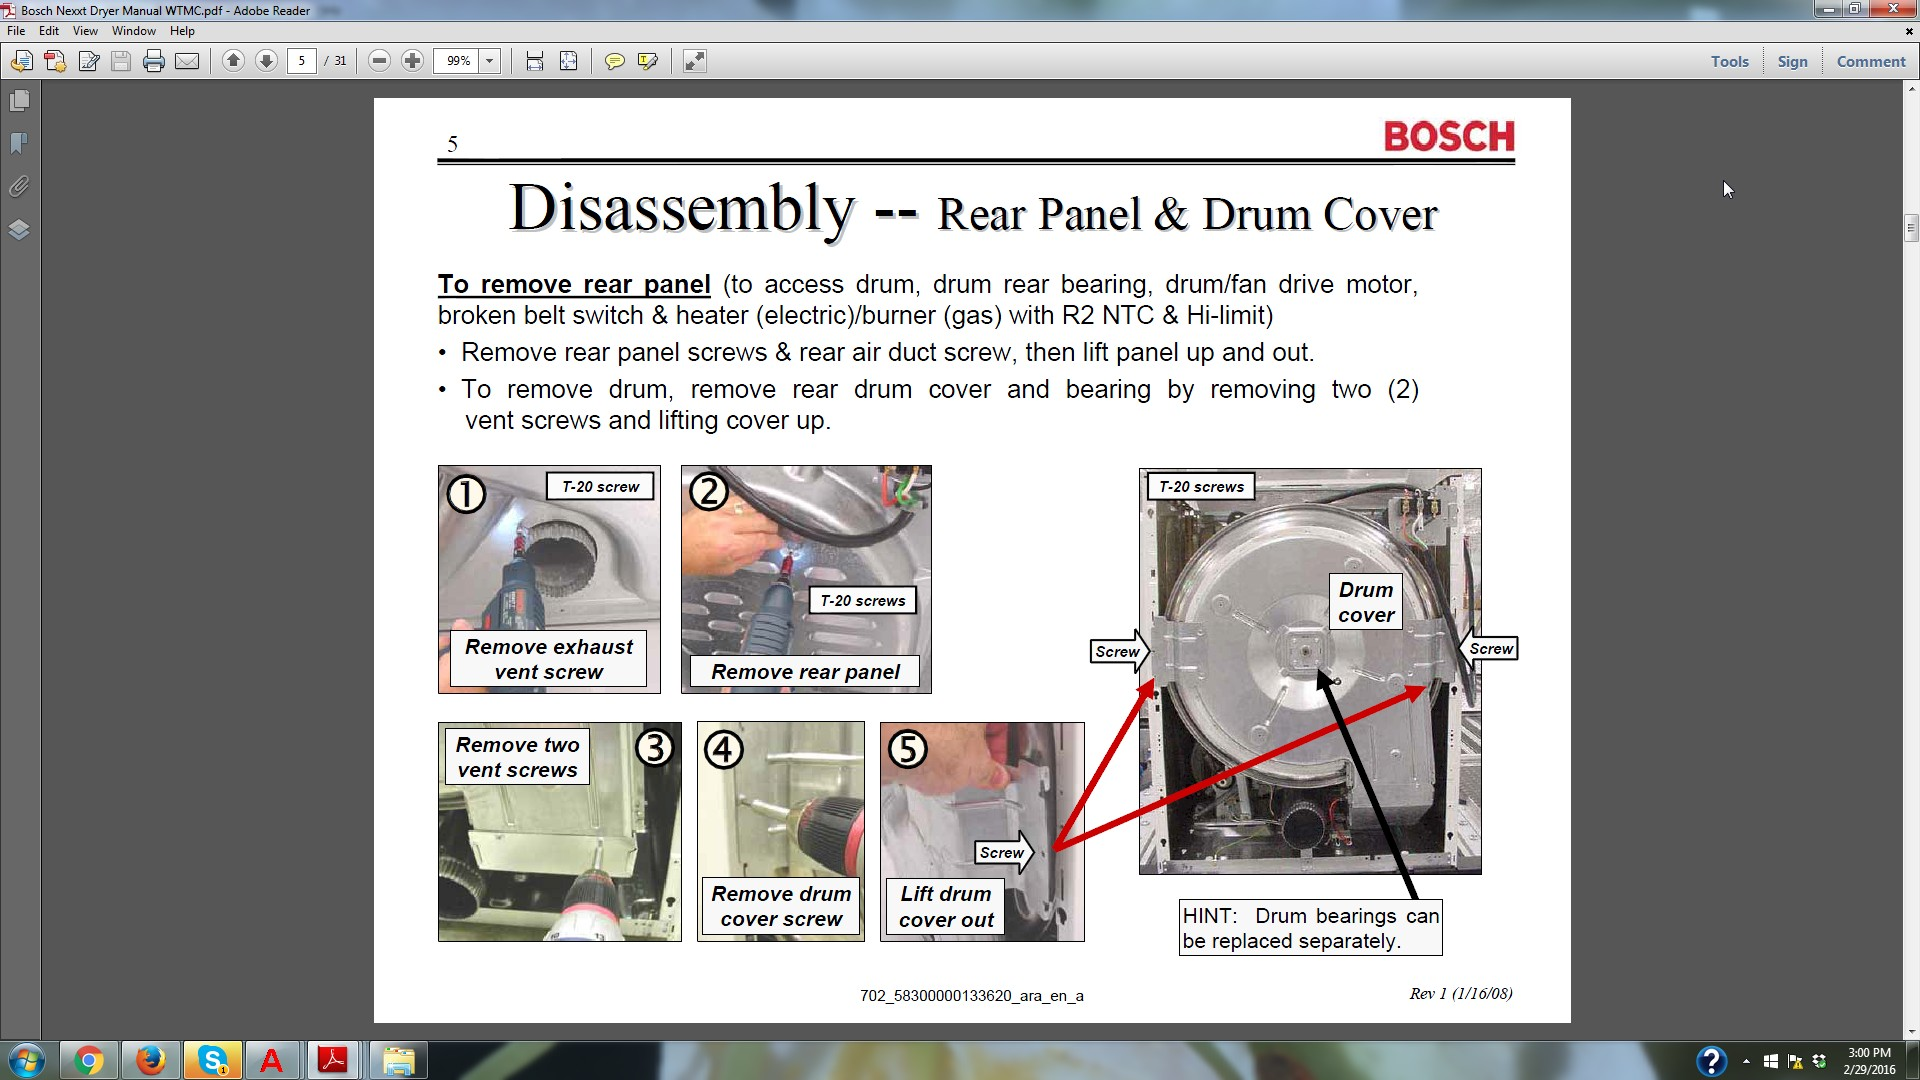 my name is i have a bosch nexxt 500 series dryer model